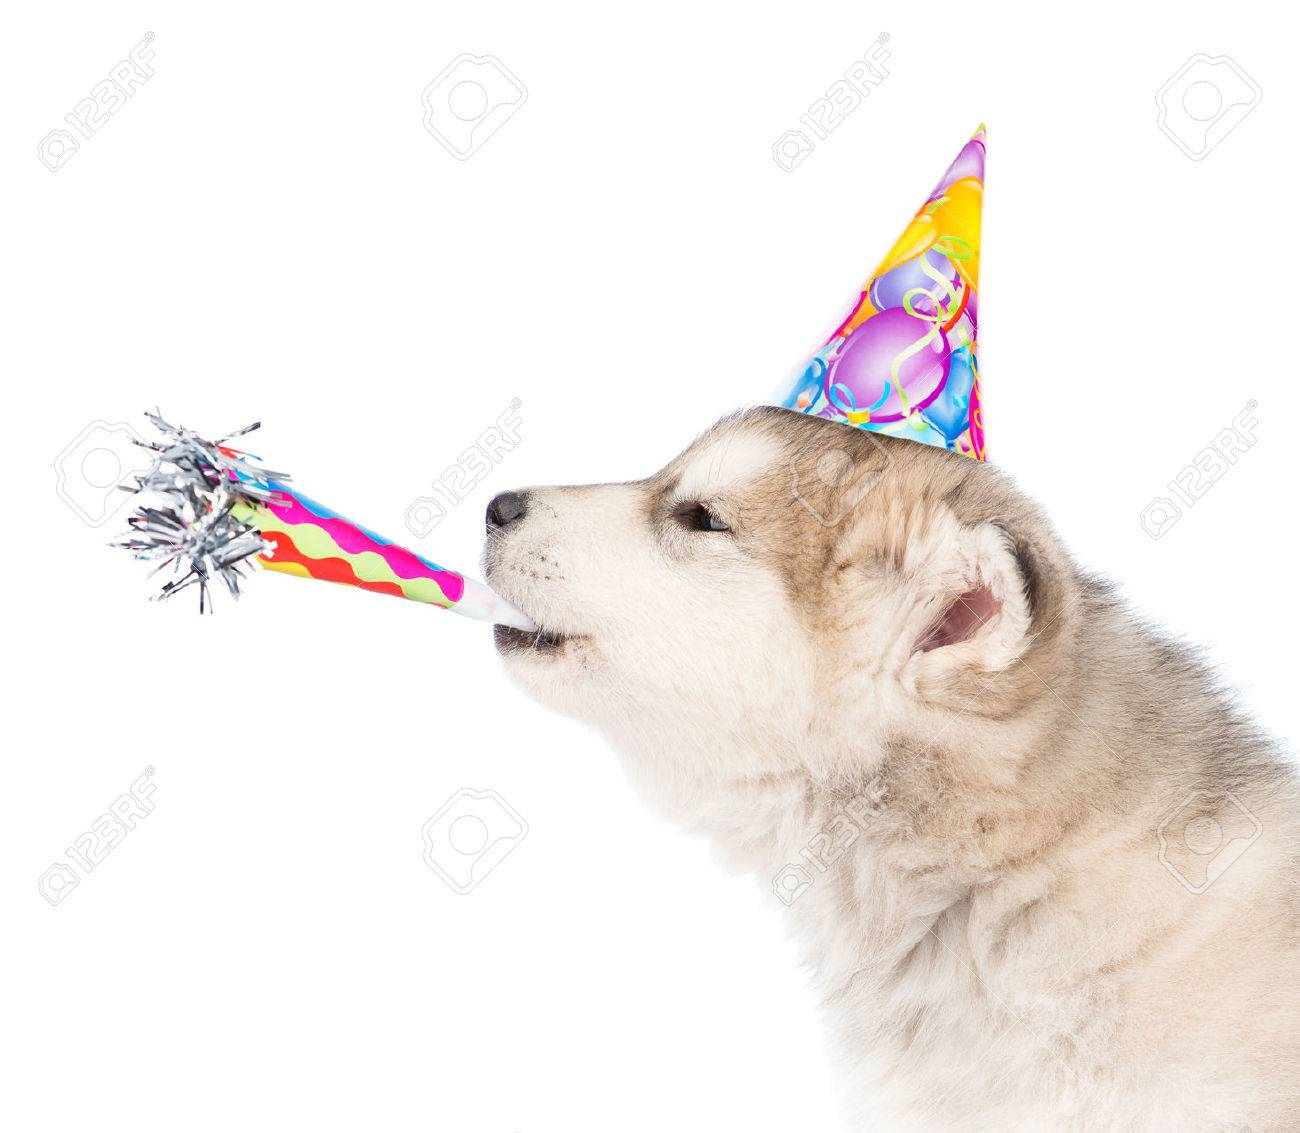 Dog In Birthday Hat Whistle Blowing Isolated On White Background Stock Photo